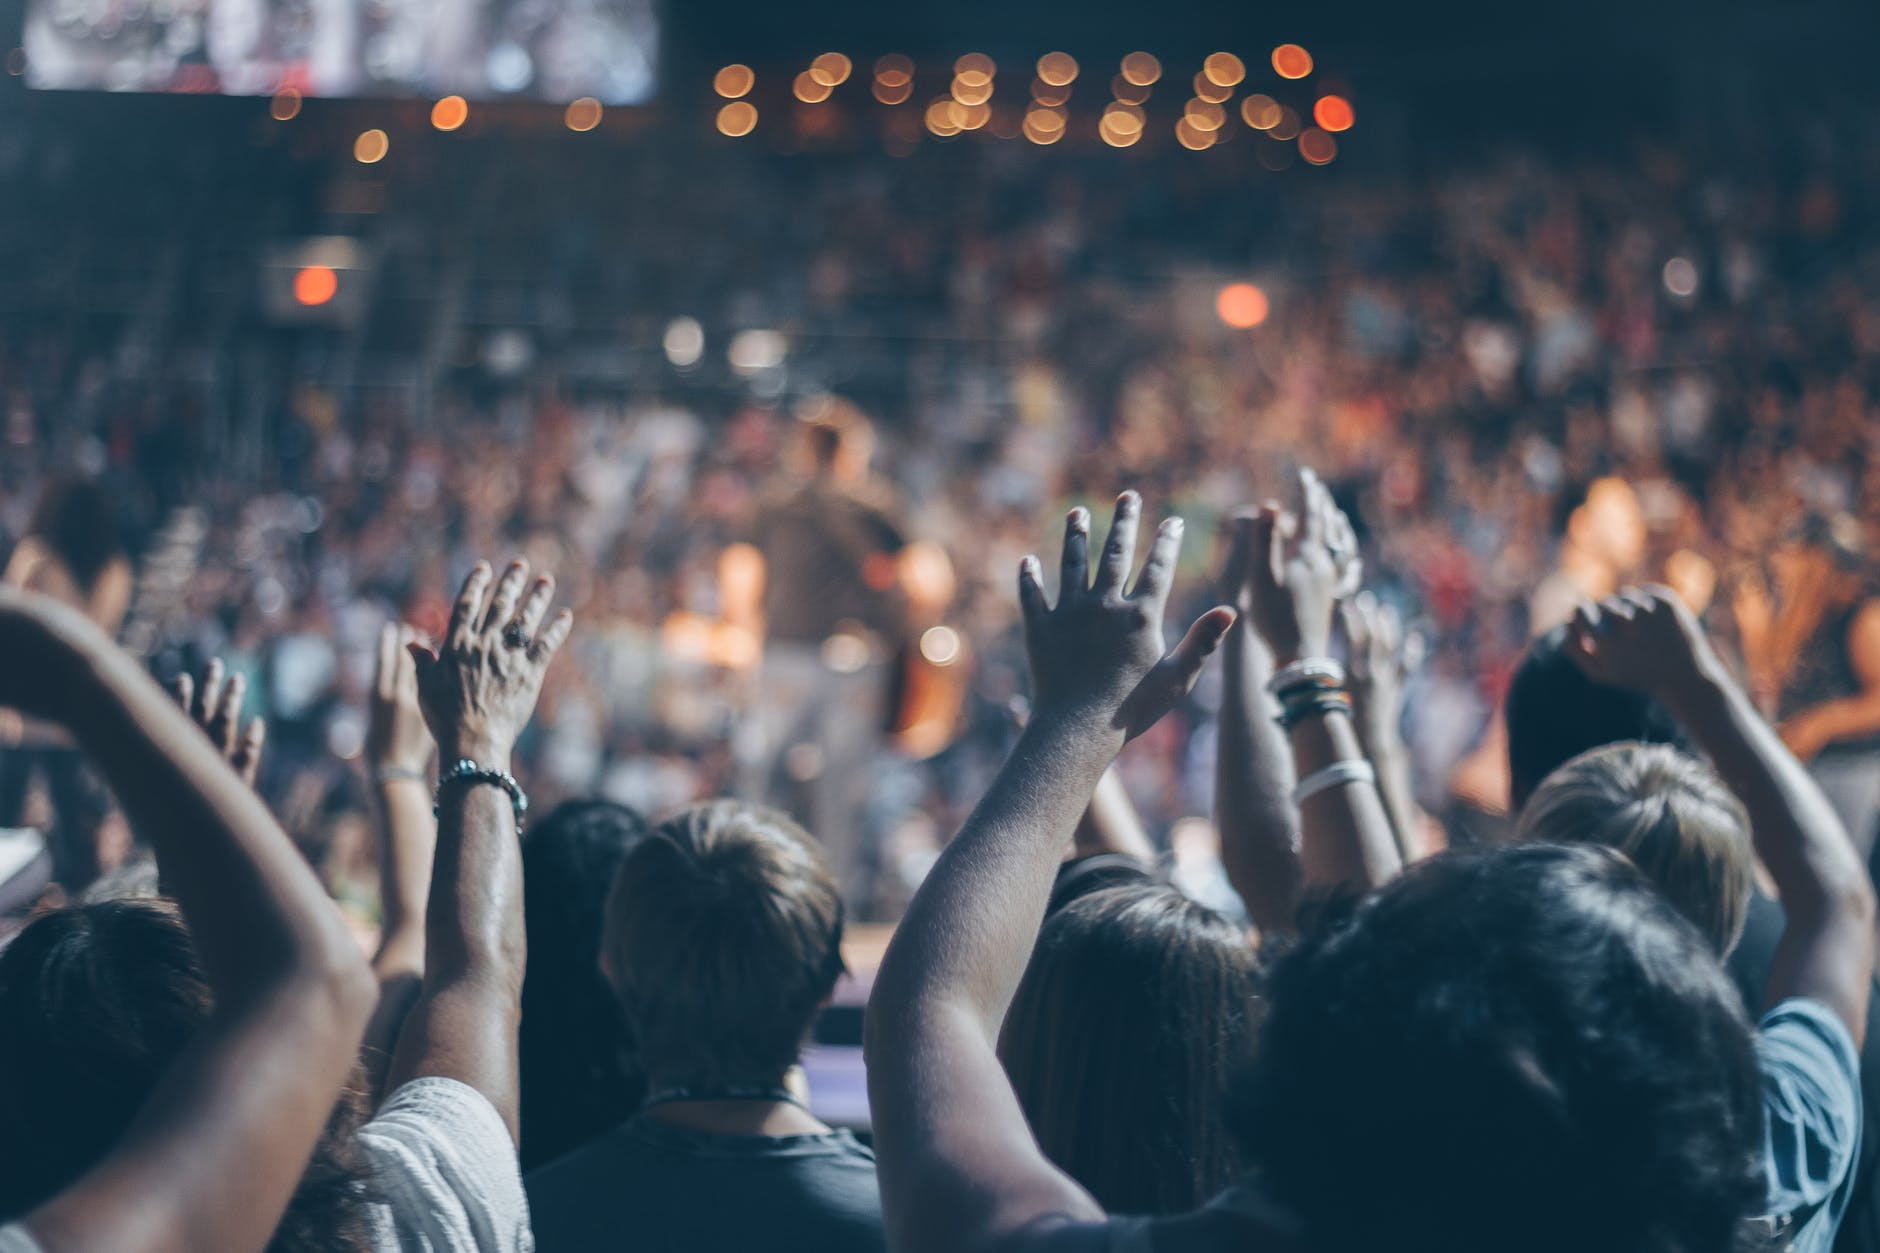 A crowd of people at a concert in the standing section with some with their hands in the air.